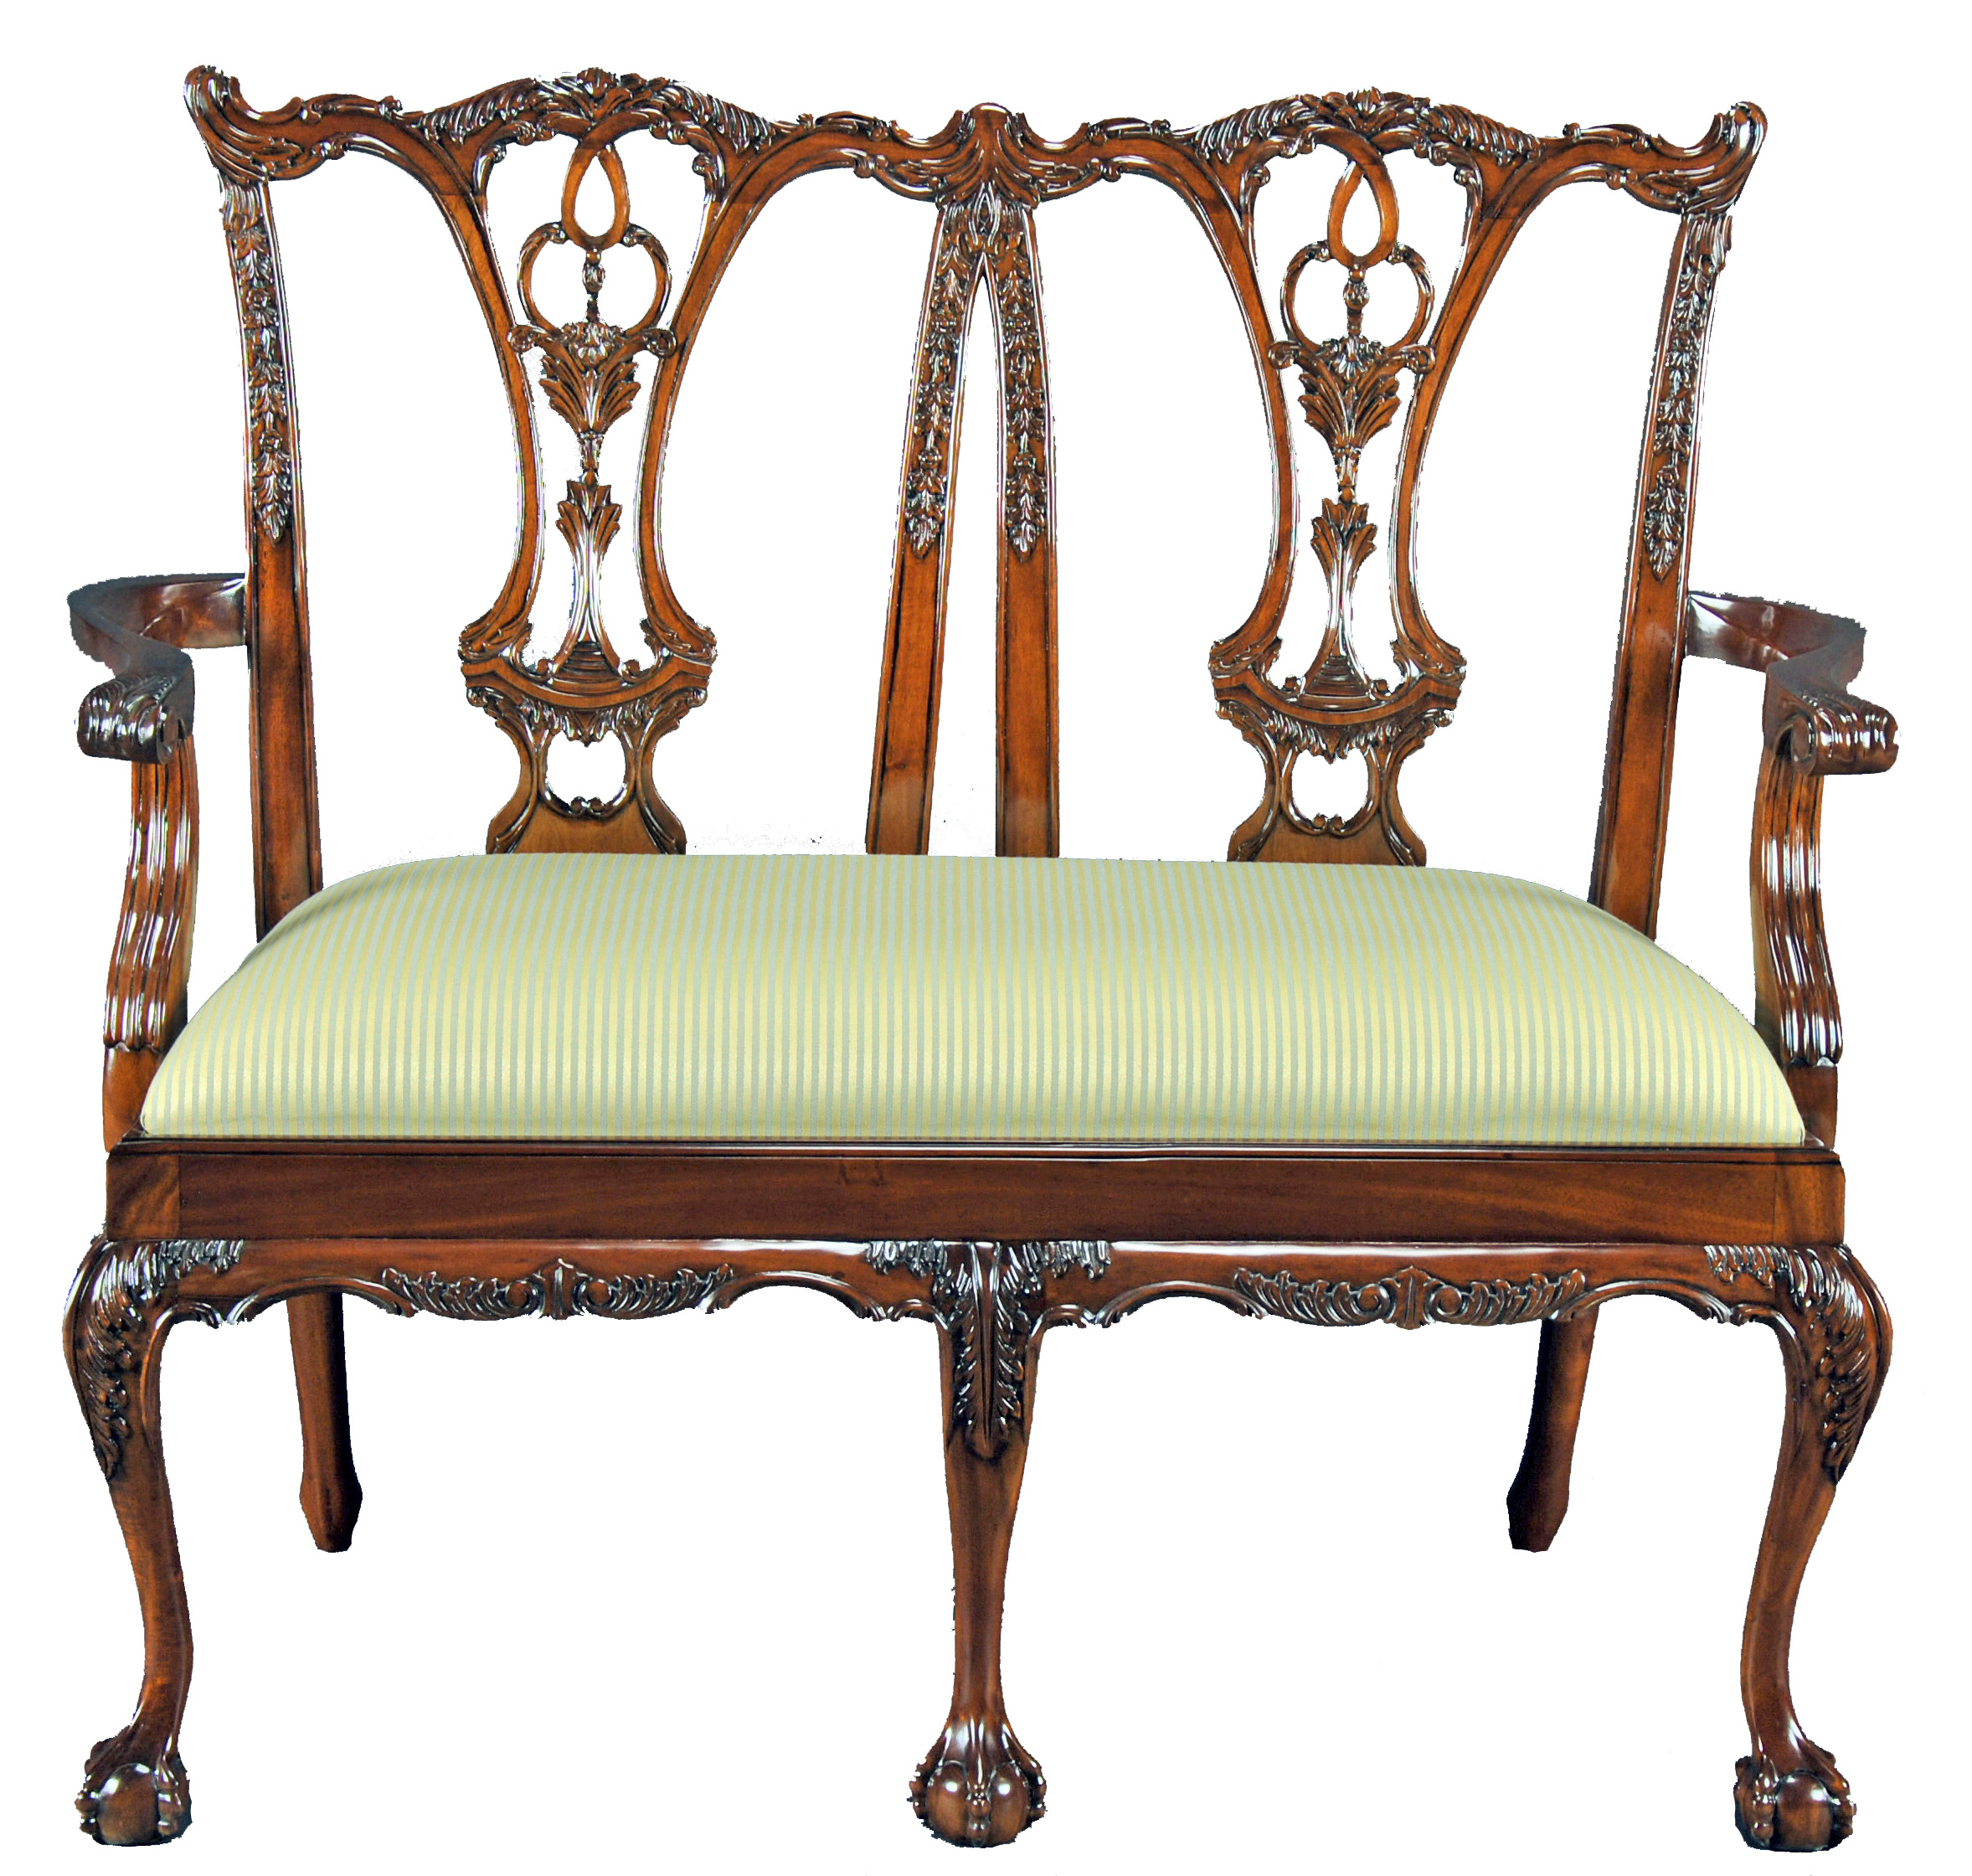 Hand Carved Mahogany Chippendale Bench Settee With Ball In Claw Feet 2 Seater Ebay